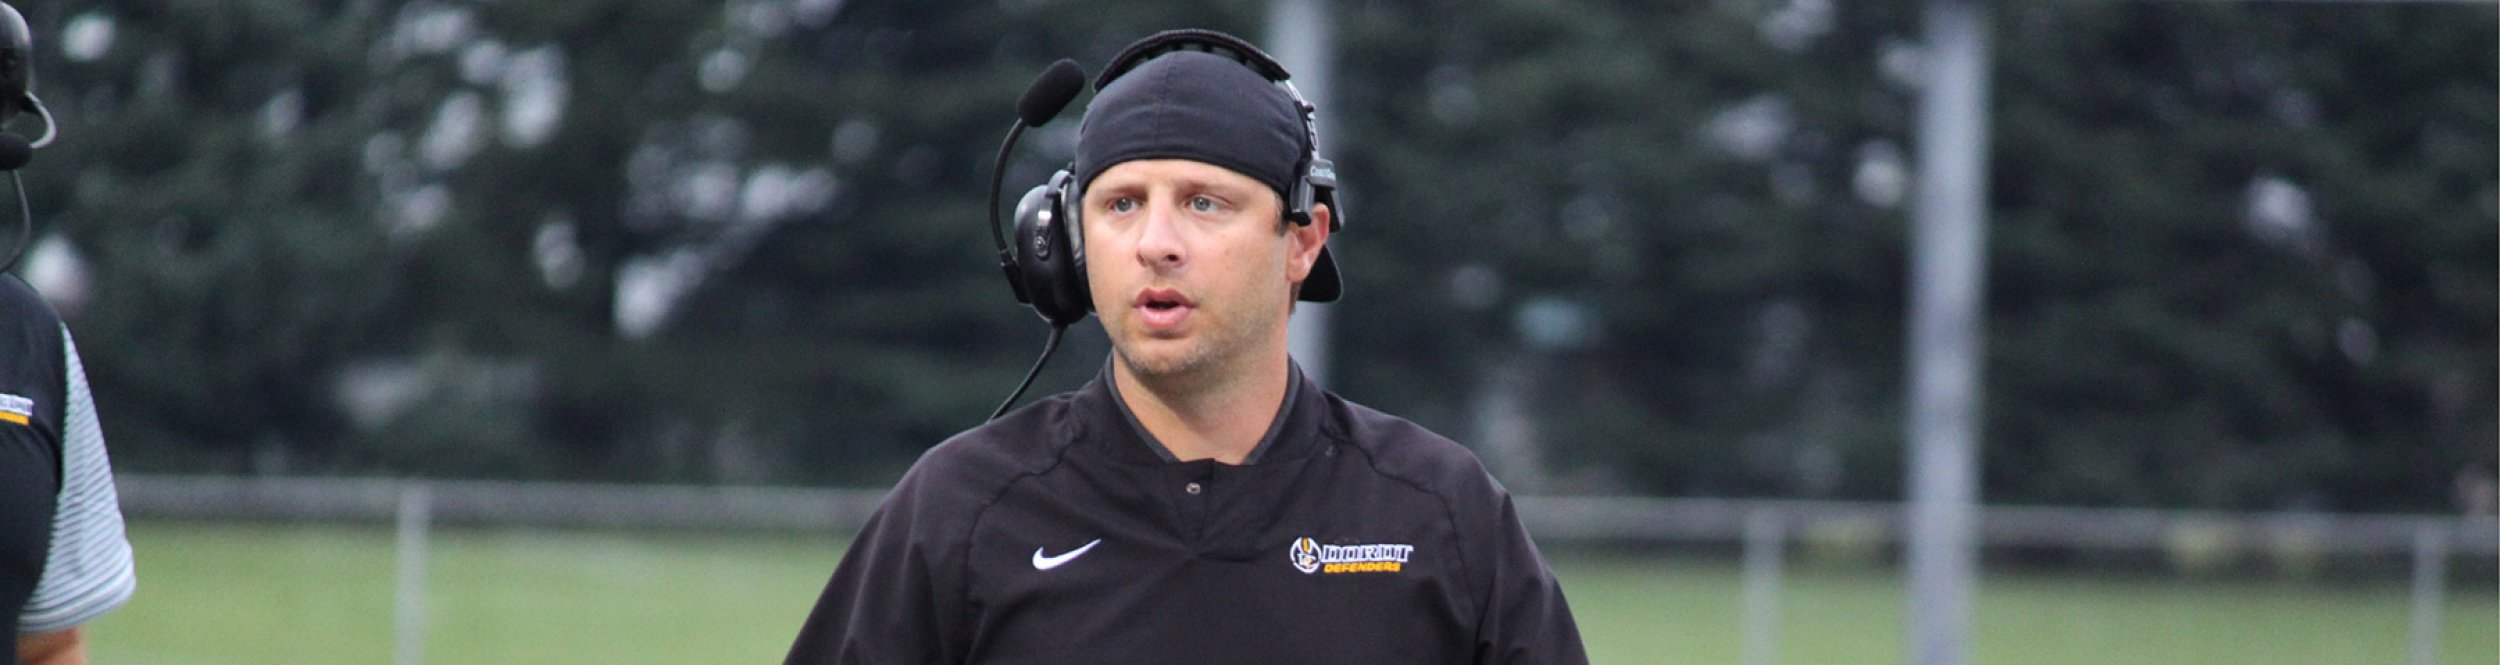 A football coach with a headset on.